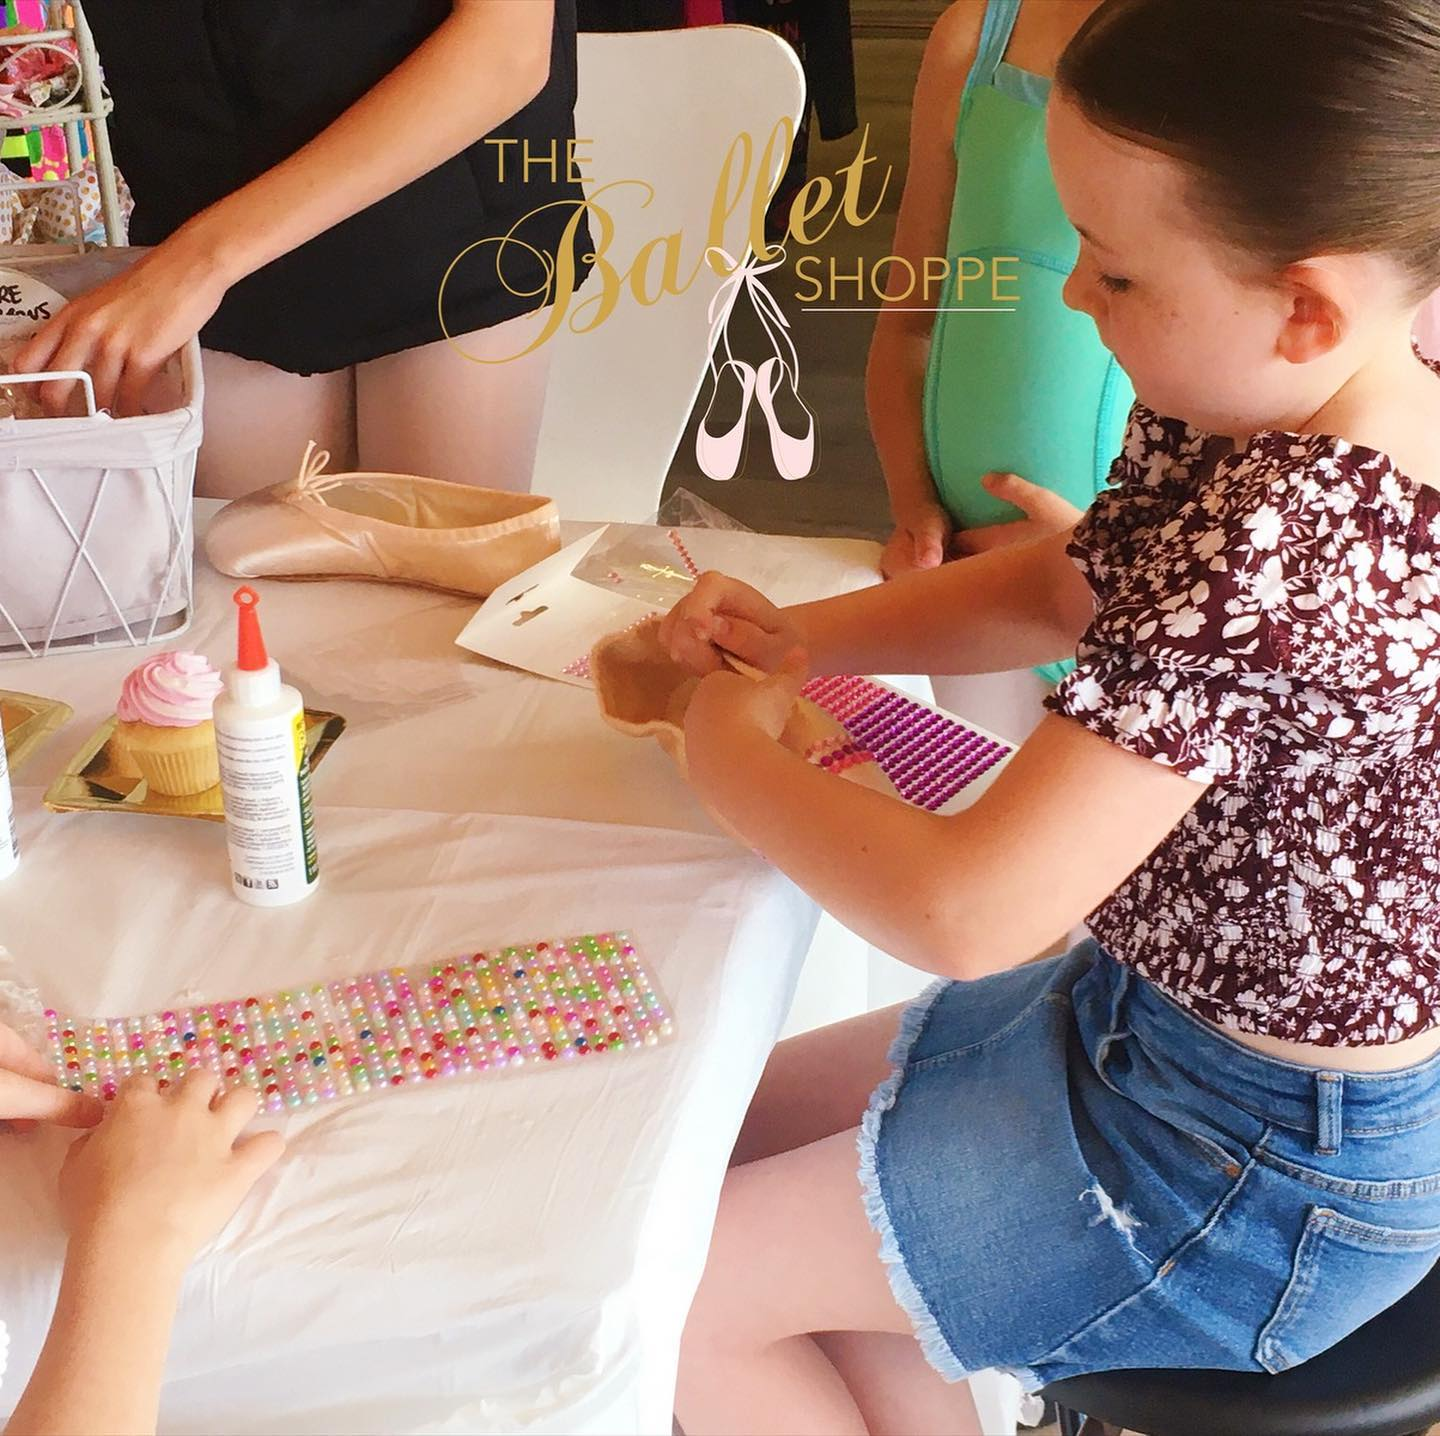 Pointe Shoe Decorating Workshop at The Ballet Shoppe